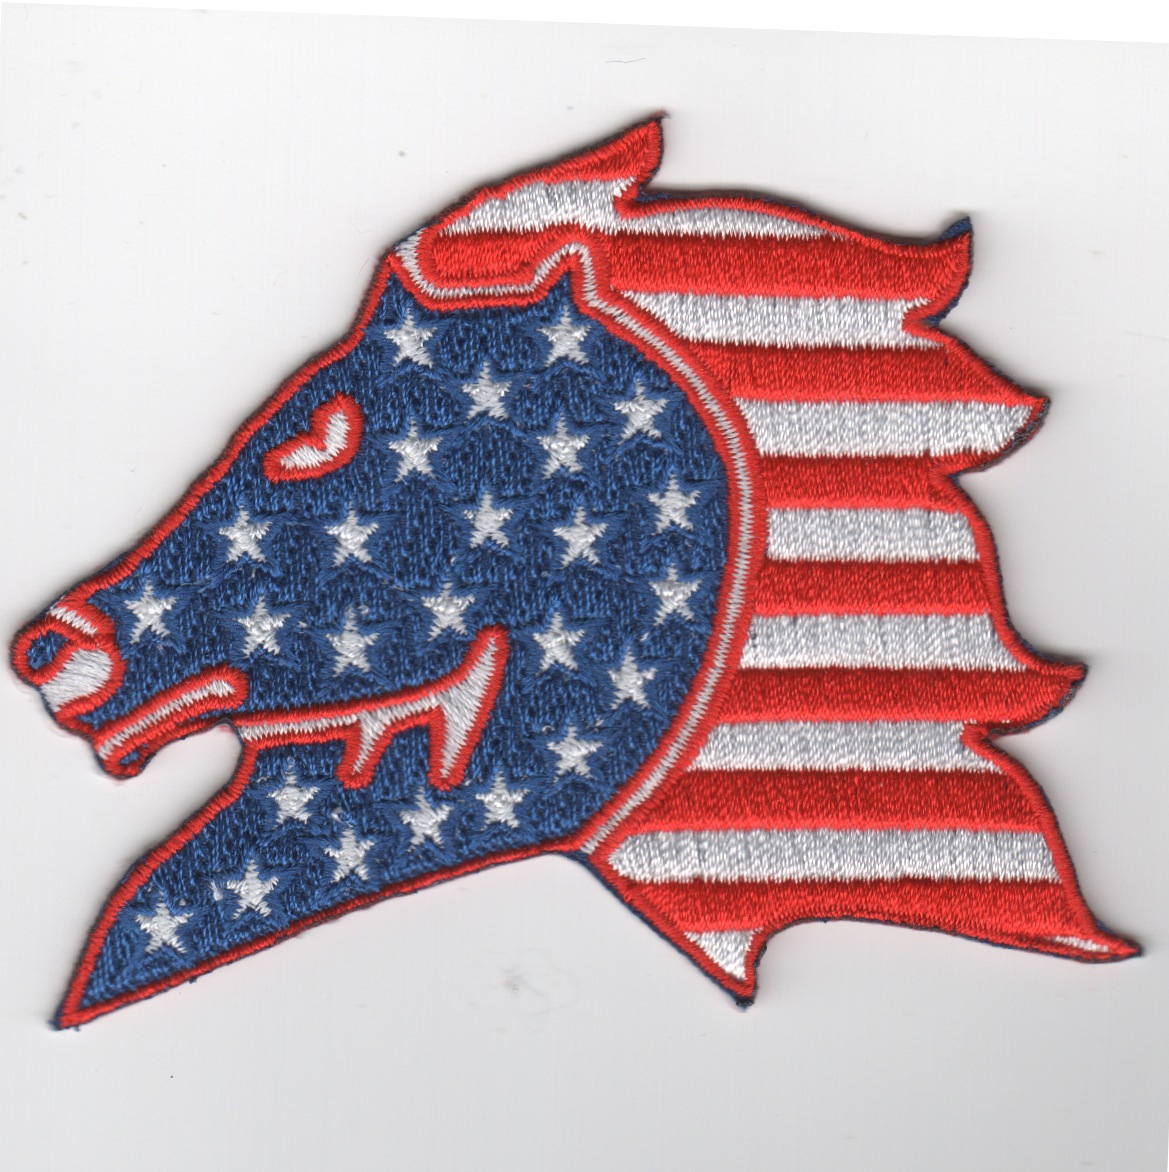 HM-14 Horsehead Patch (Red/White/Blue)